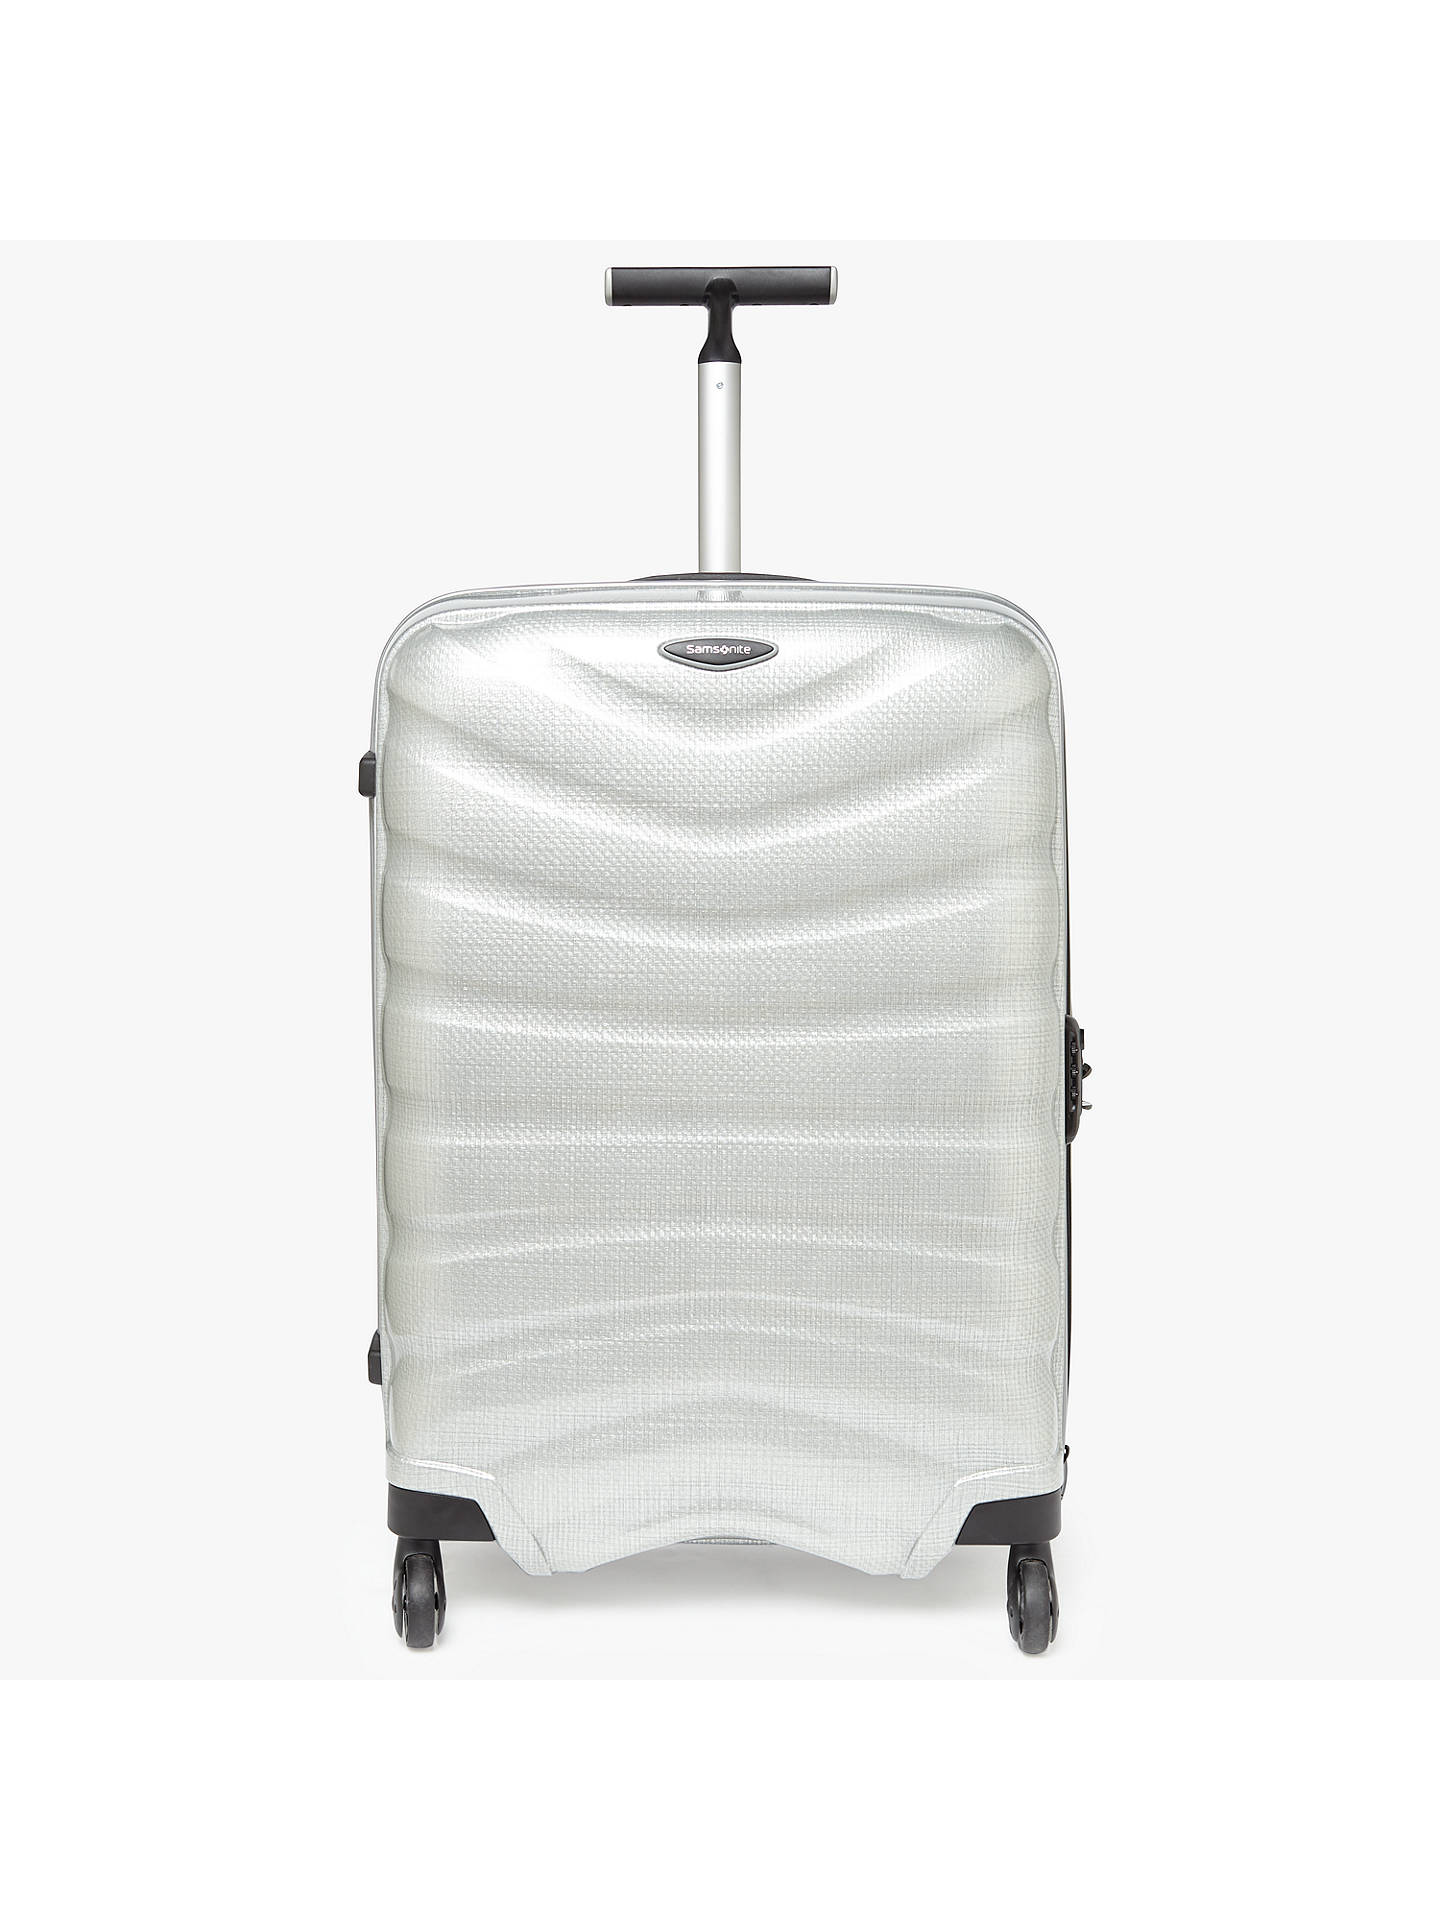 Samsonite Firelite 4-Wheel 69cm Medium Suitcase, Silver at John